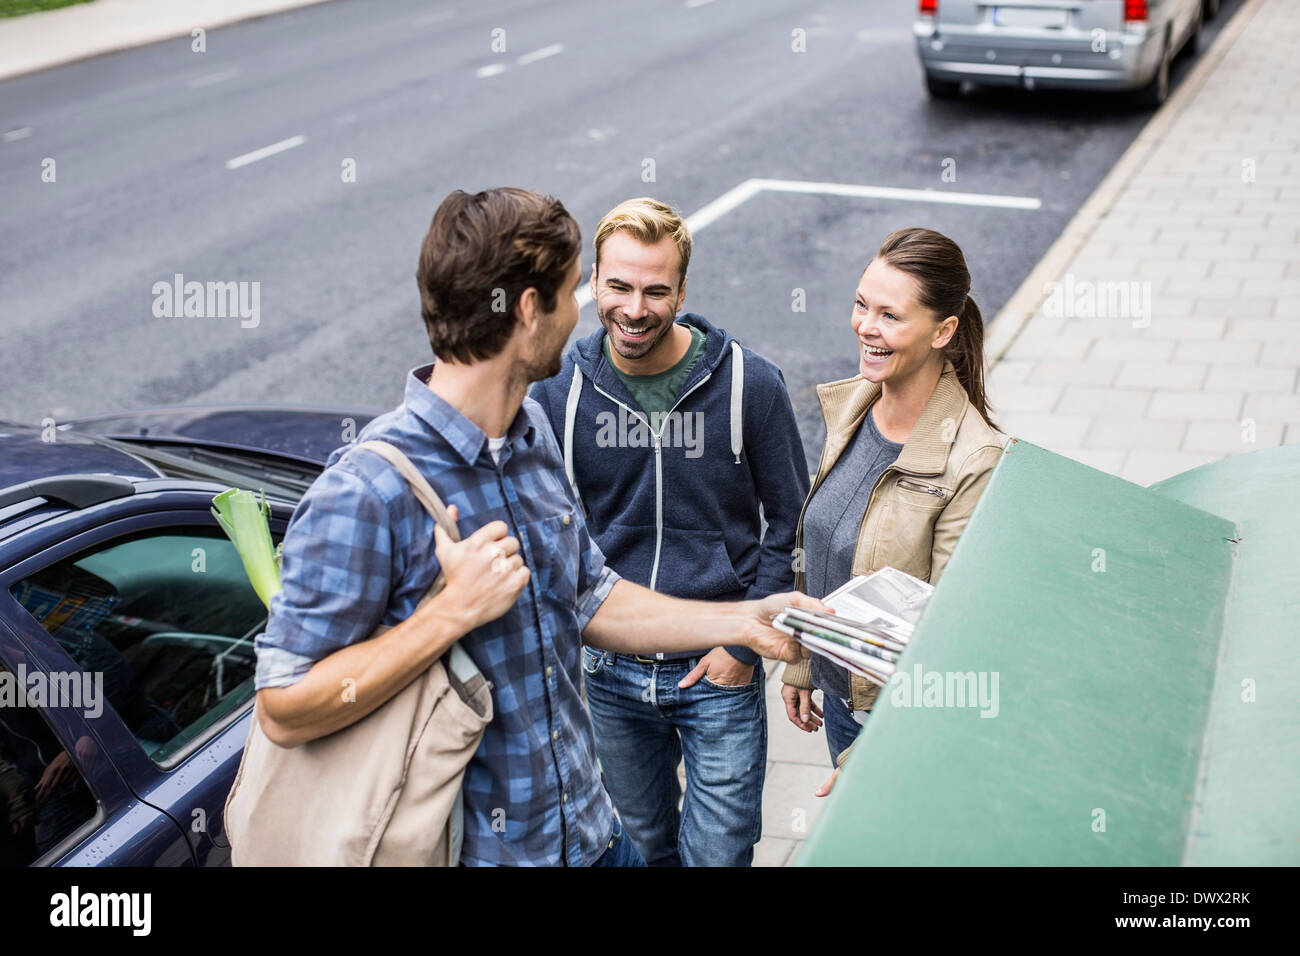 Happy friends with man putting  newspaper in recycling bin - Stock Image